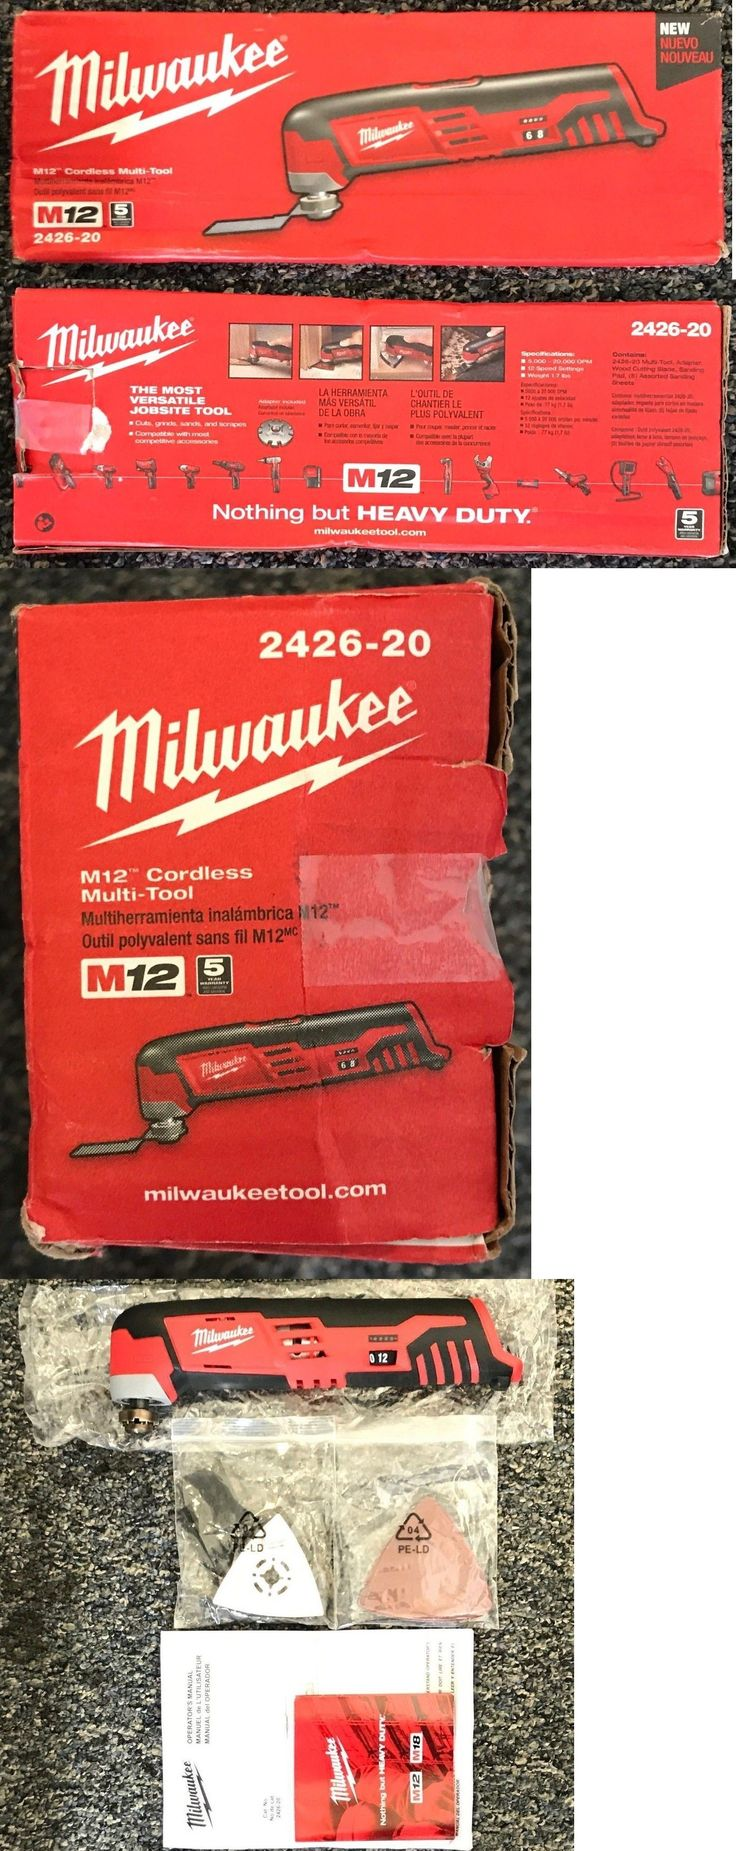 Multi-Tools 46459: Milwaukee 2426-20 M12 Cordless Multi-Tool (Tool Only) - Brand New!!! -> BUY IT NOW ONLY: $49.99 on eBay!